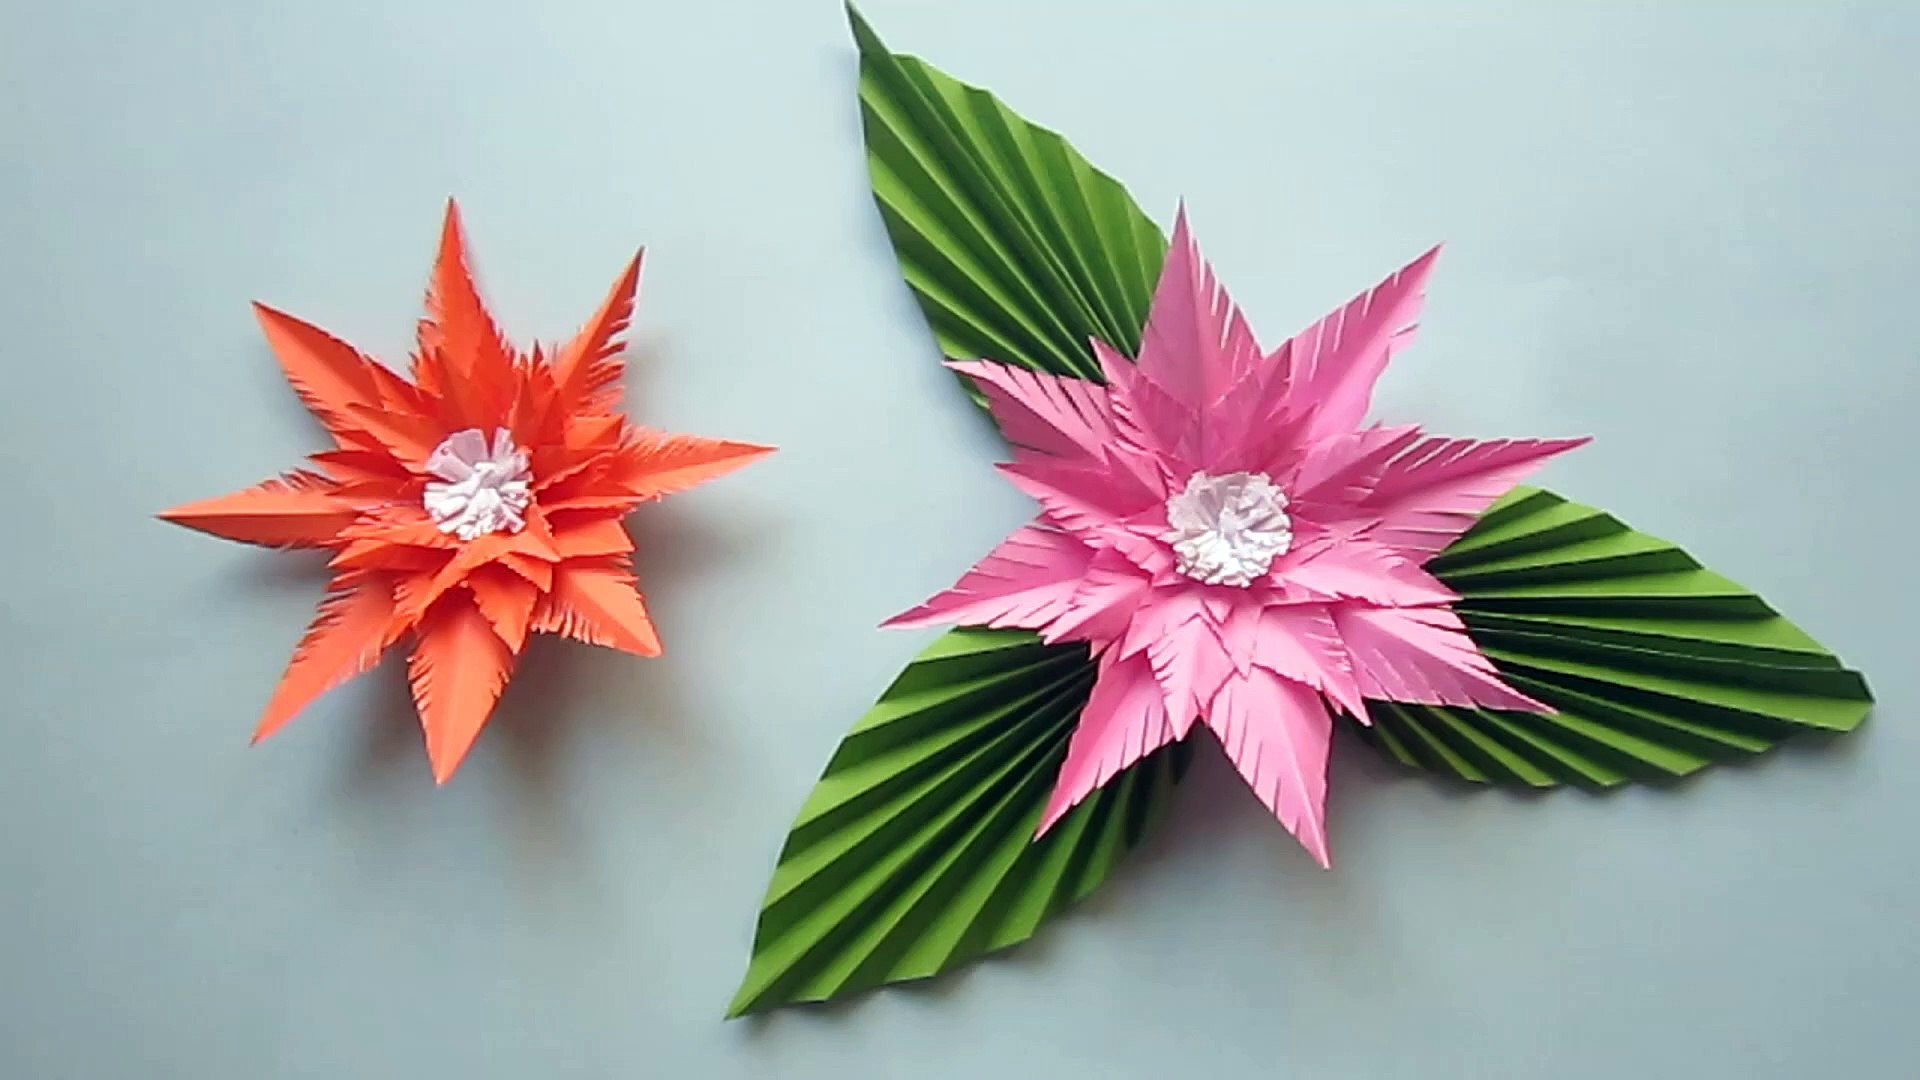 How to Make Tissue Paper Flowers - Making Tissue Paper Flowers ...   1080x1920